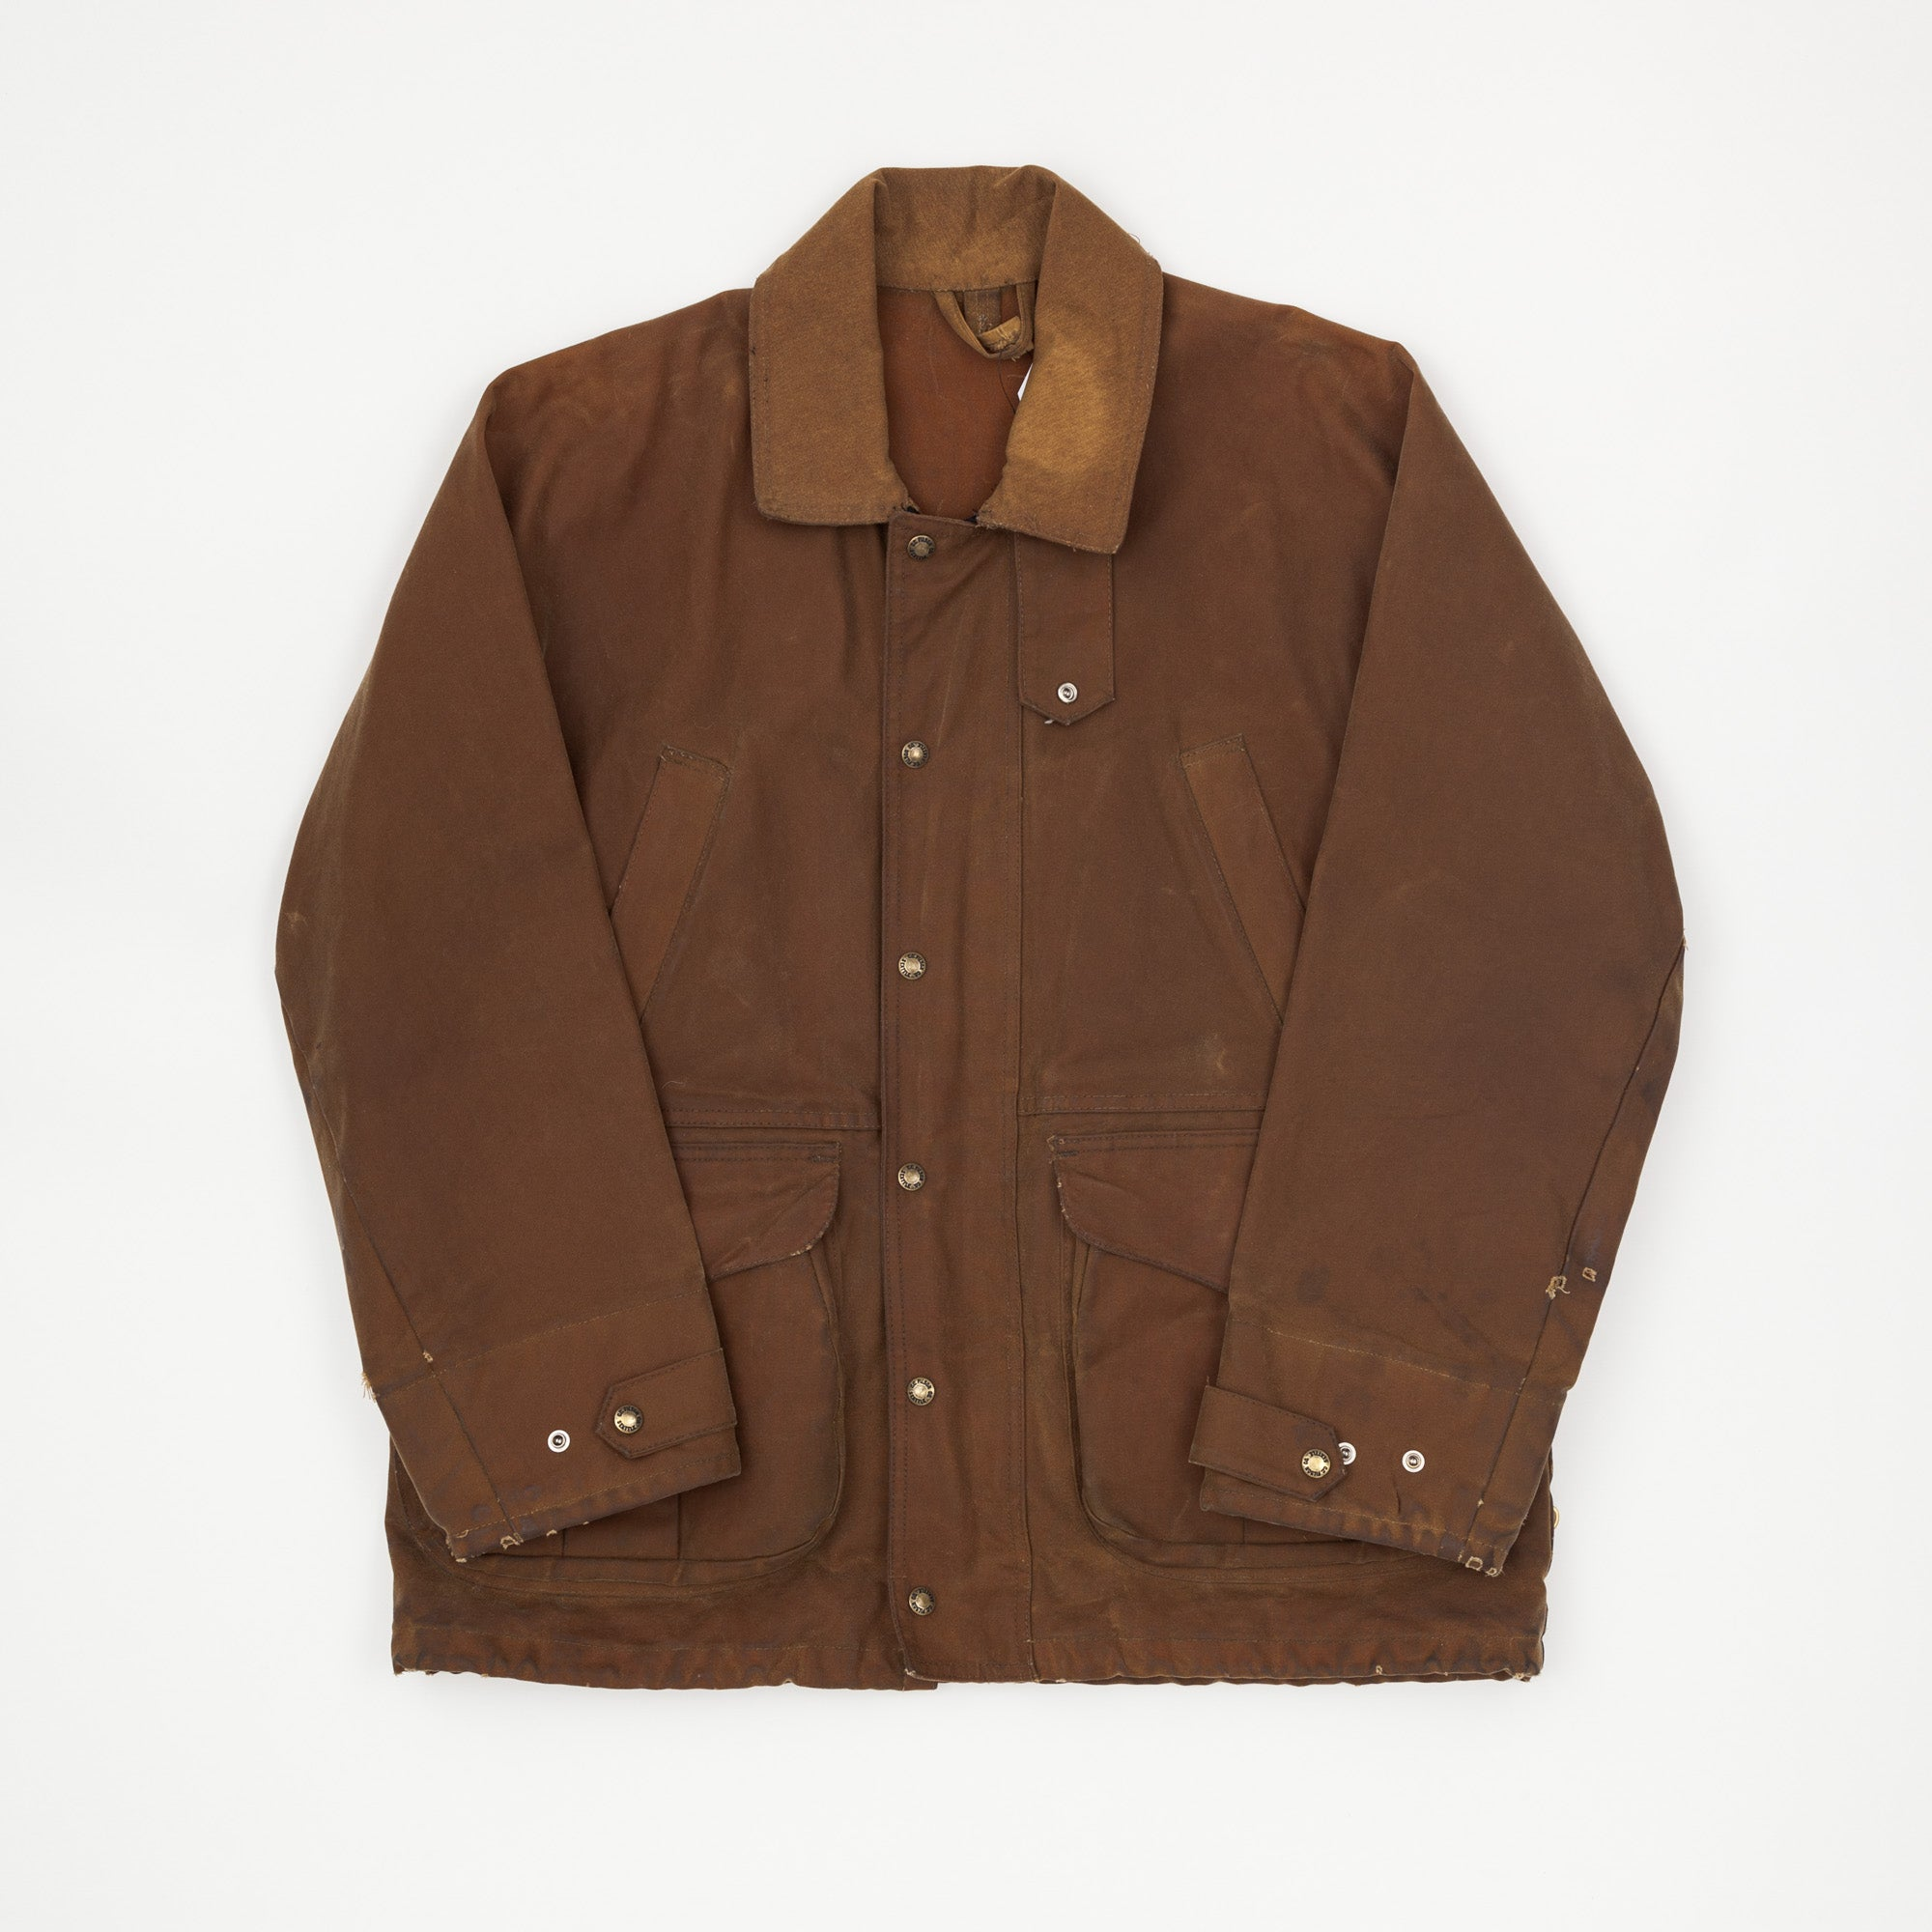 Filson Vintage Waxed Jacket